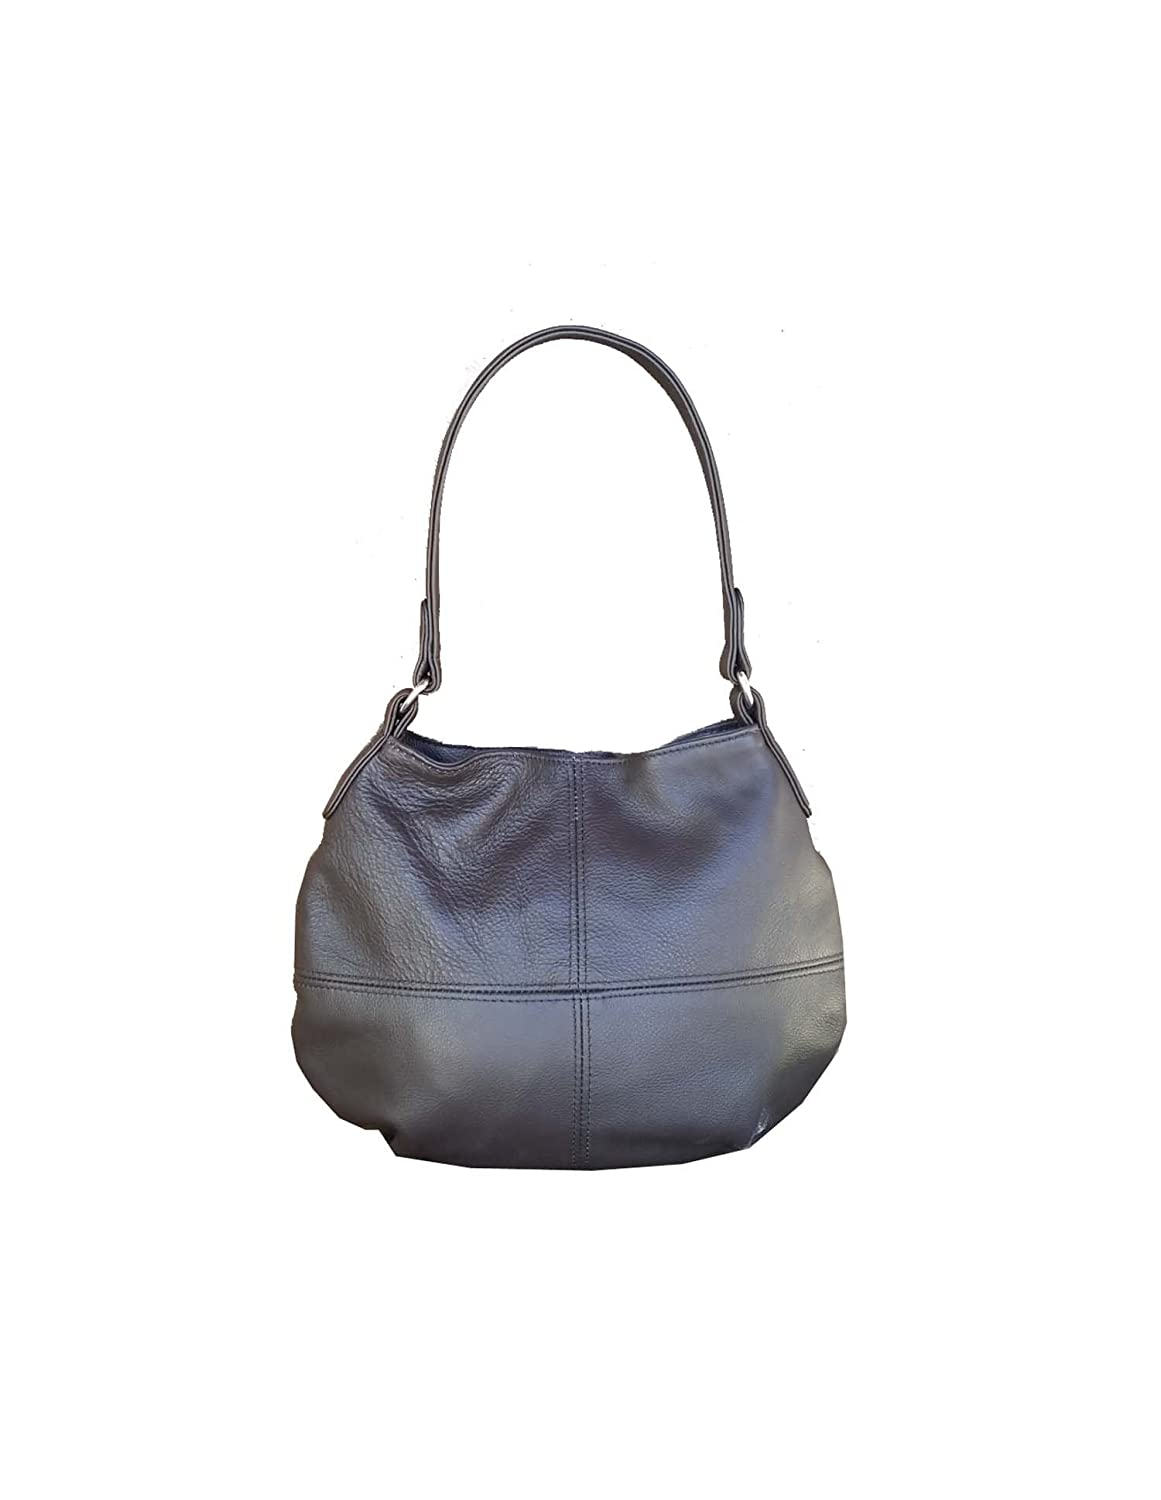 Fgalaze Metallic gray leather bag - women's purse - slouchy hobo bag - cute shoulder handbag - aida